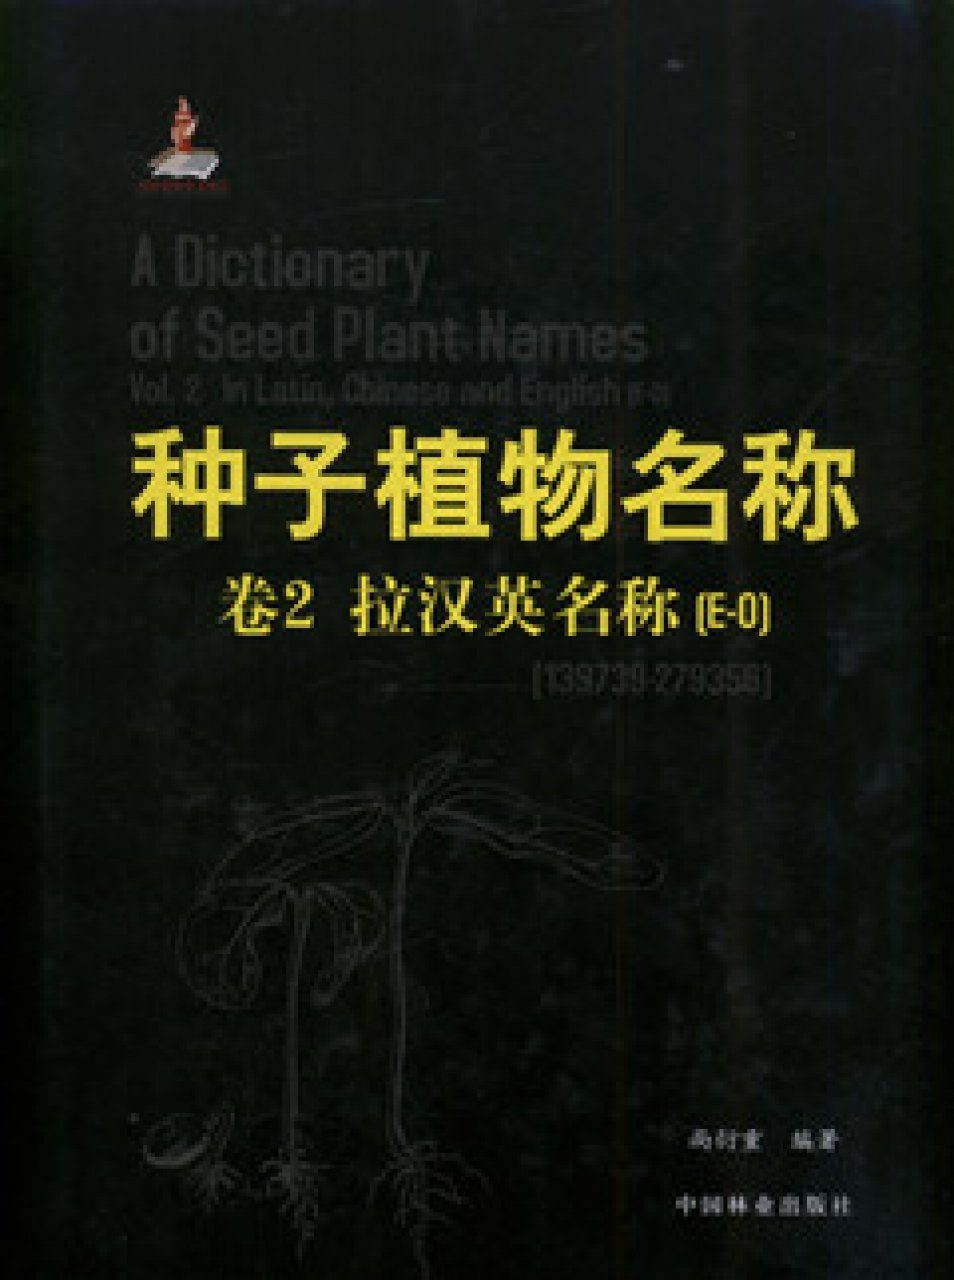 A Dictionary of Seed Plant Names (5-Volume Set)